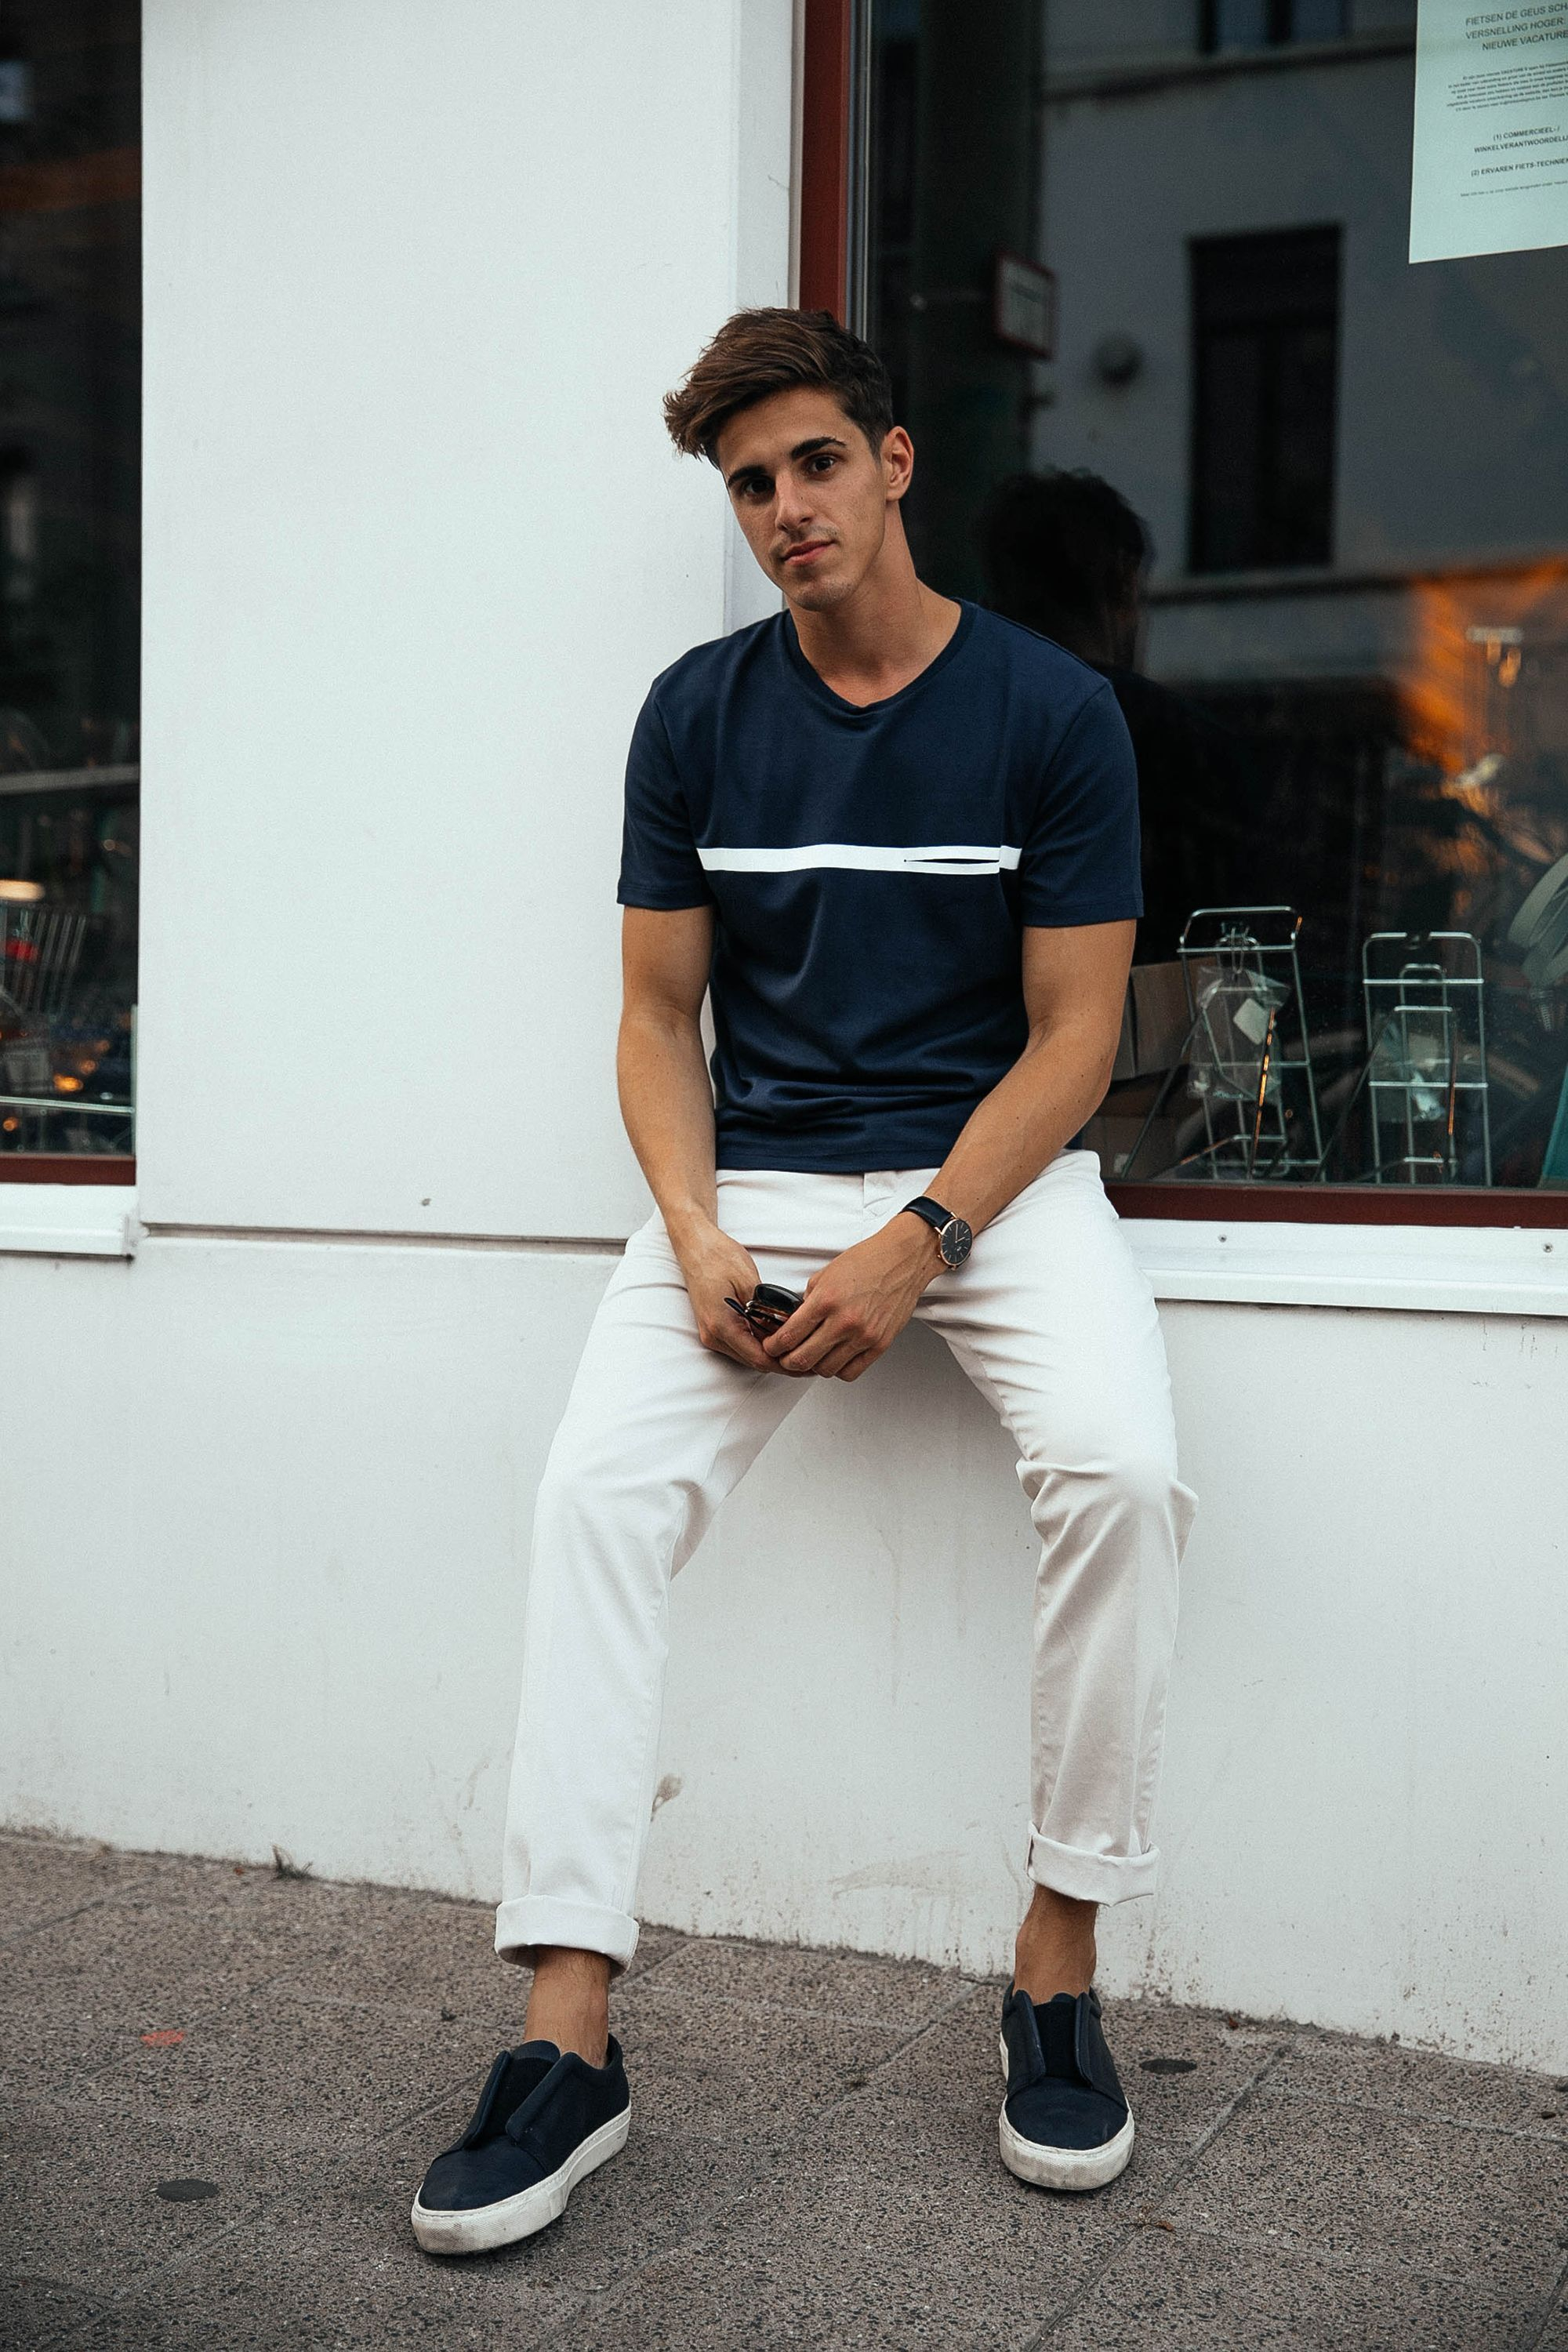 9e6d90cc White pants + dark t-shirt = a casual, summer men's outfit #men'sjewelry